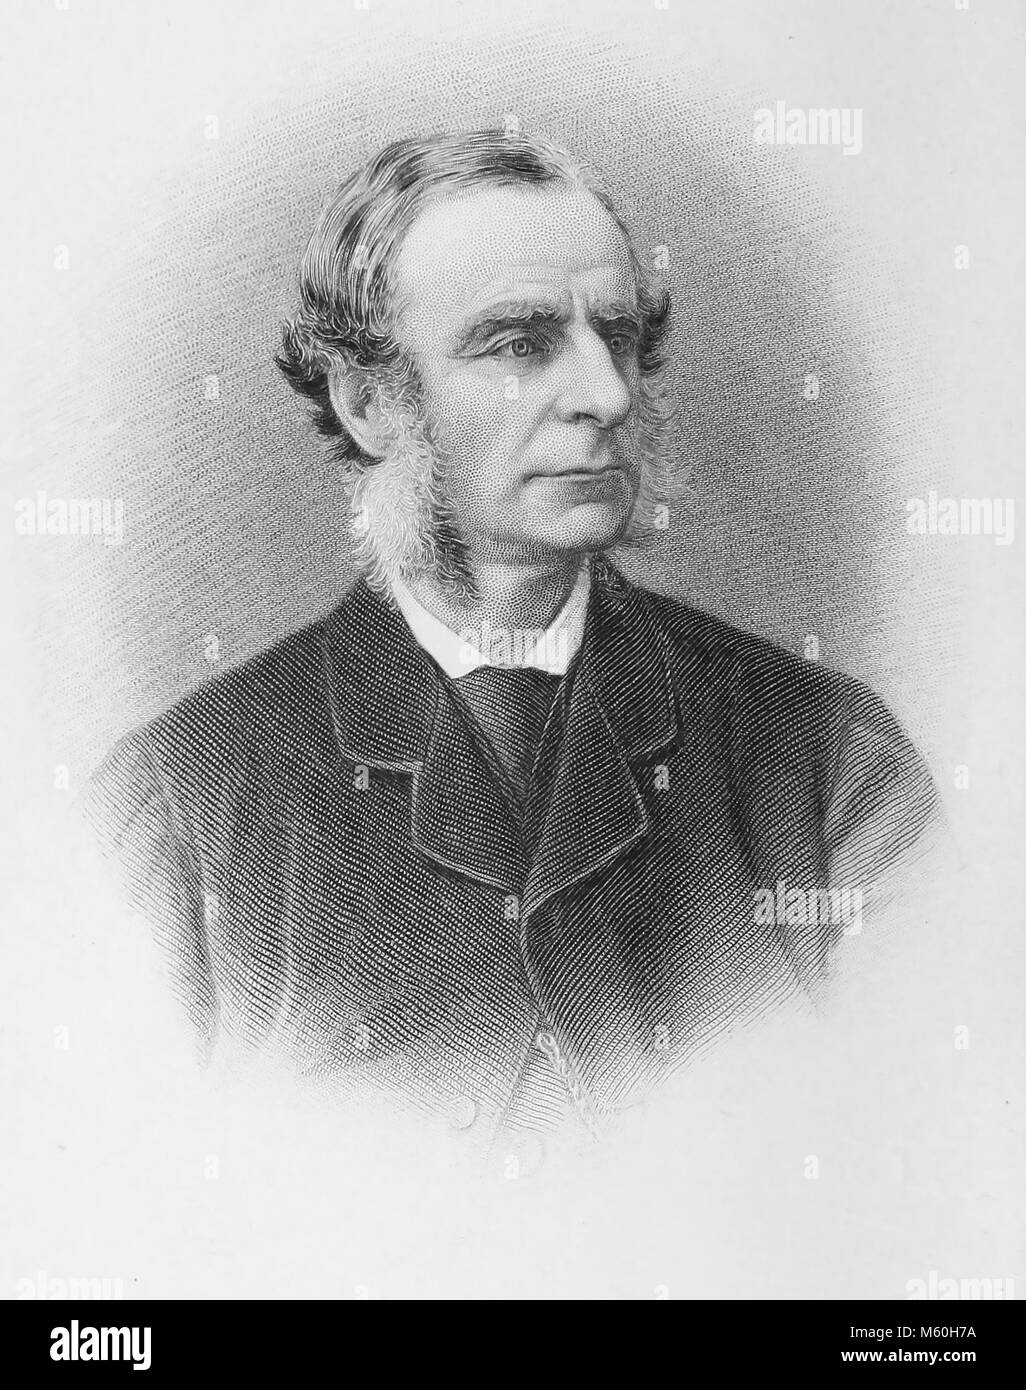 CHARLES KINGSLEY (1819-1875) English social reformer and novelist - Stock Image